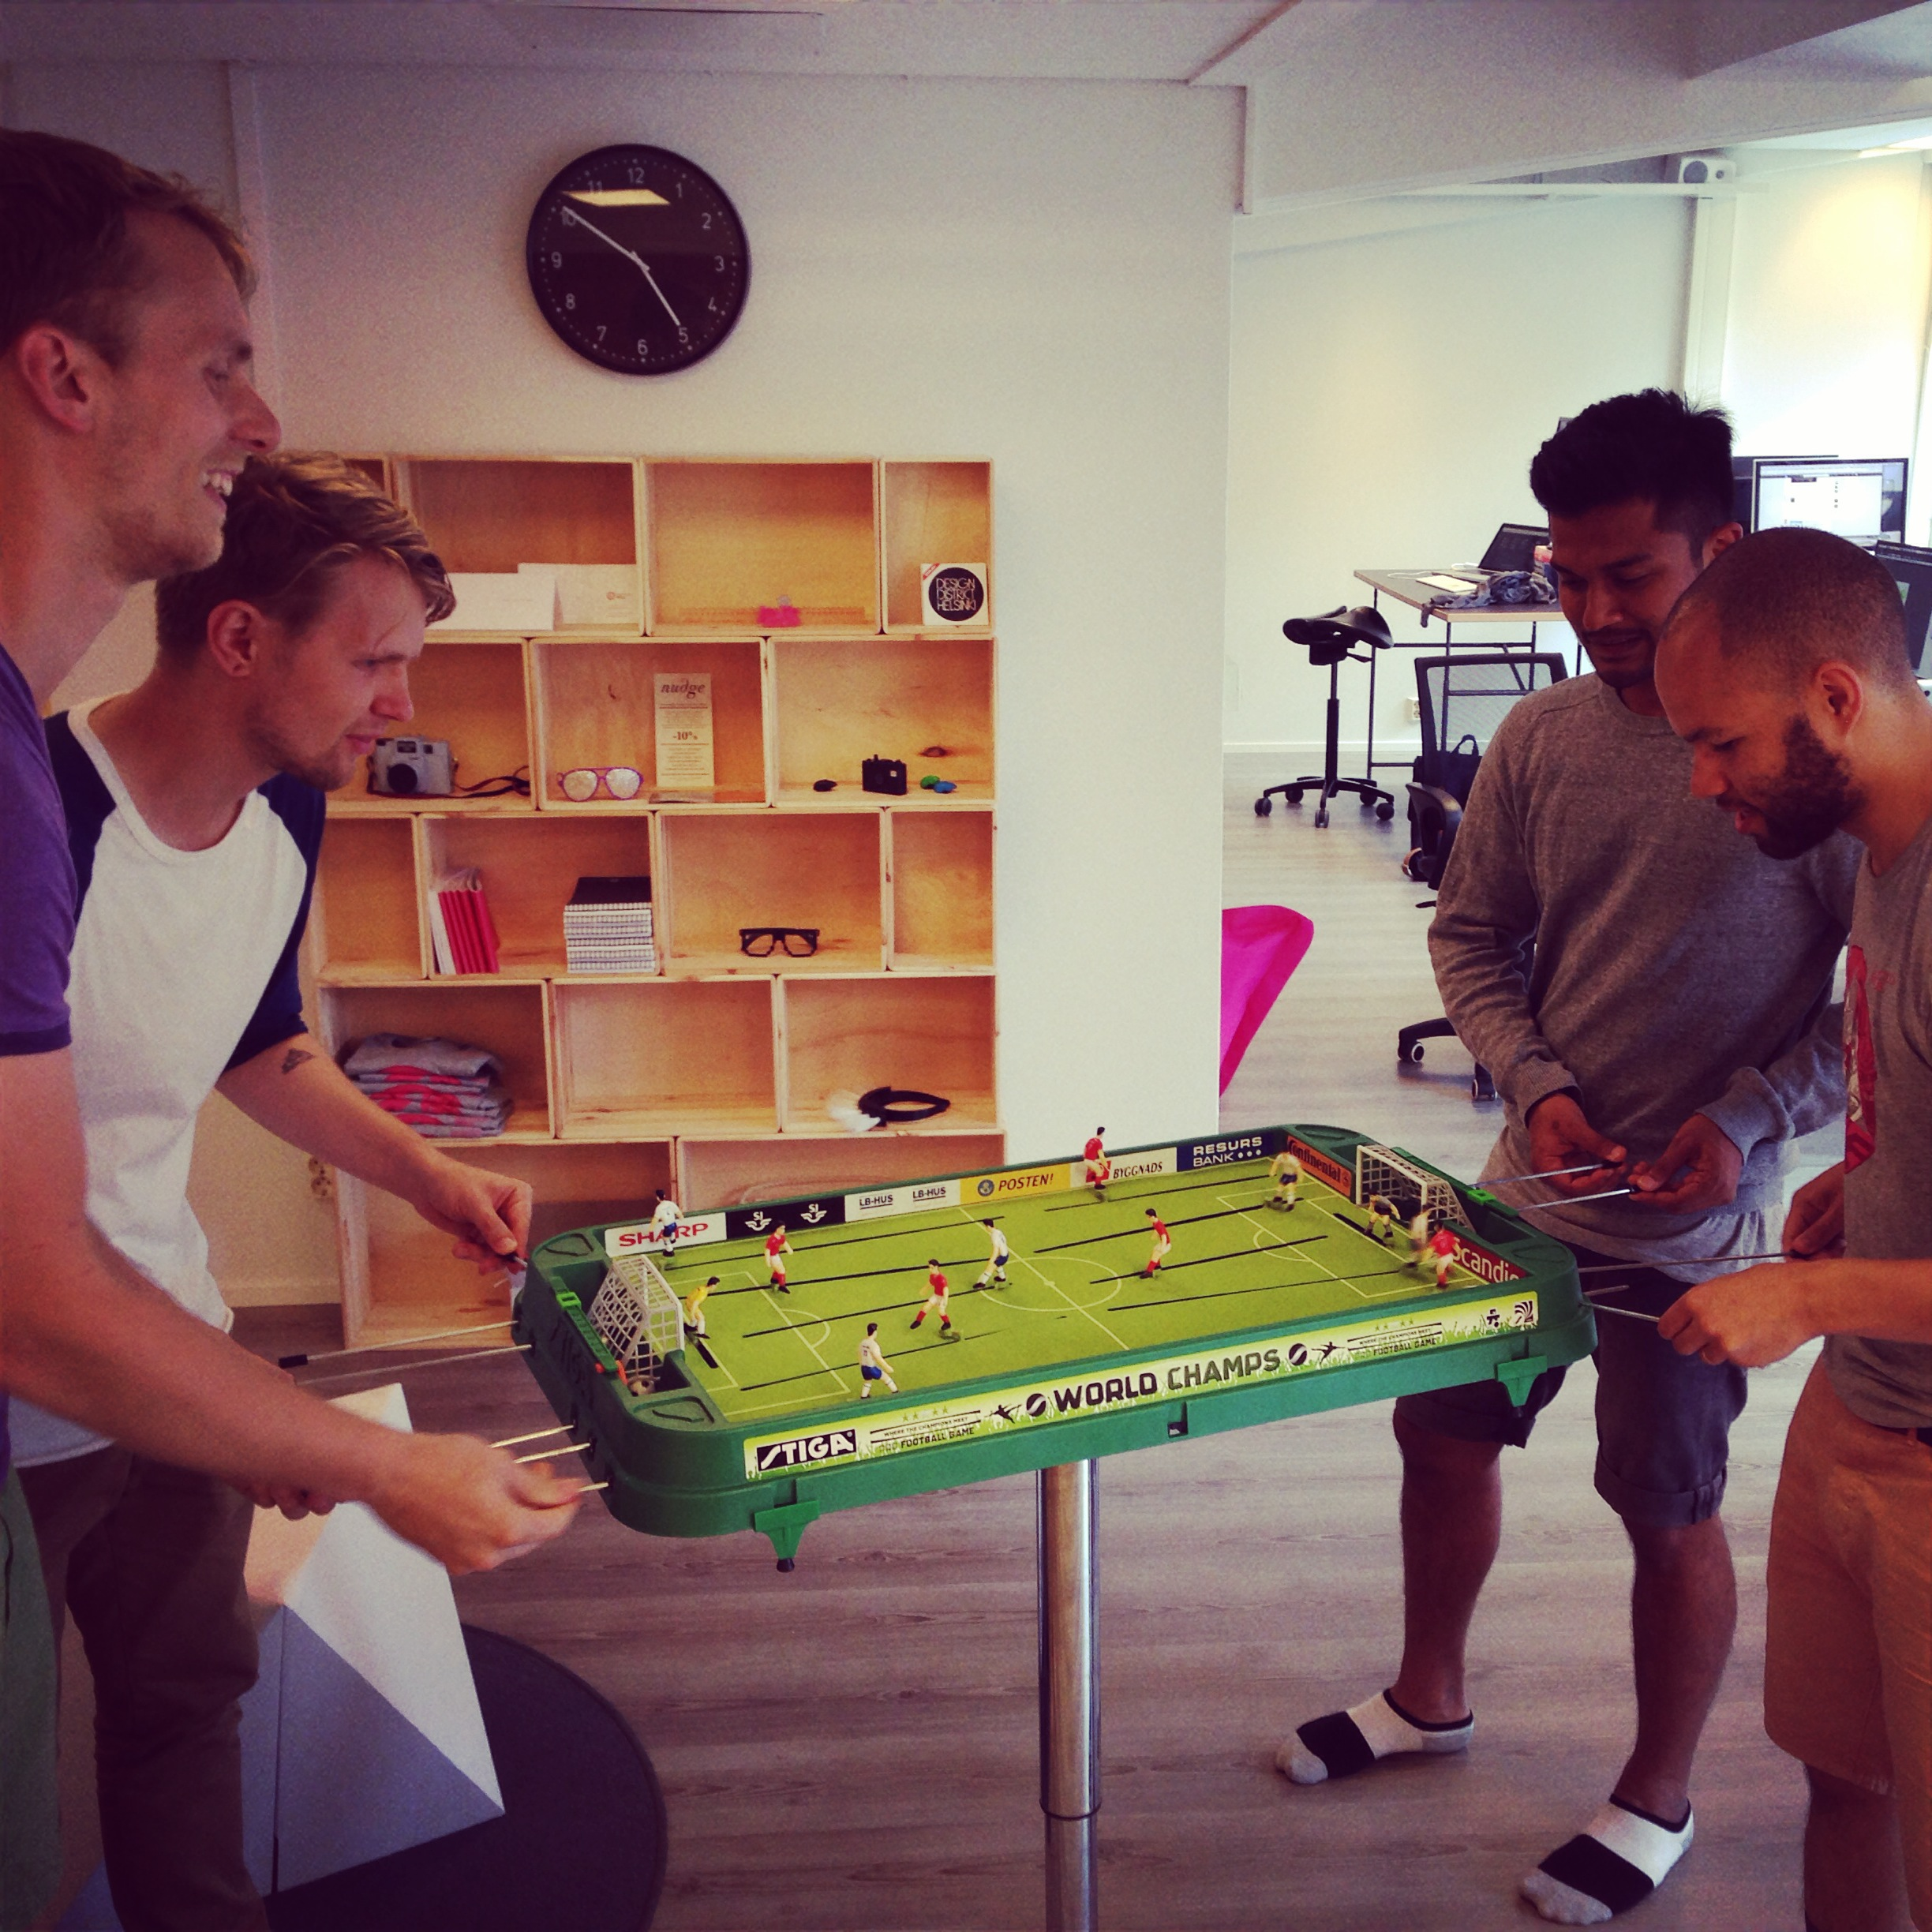 Having a break from website projects to play a little table soccer